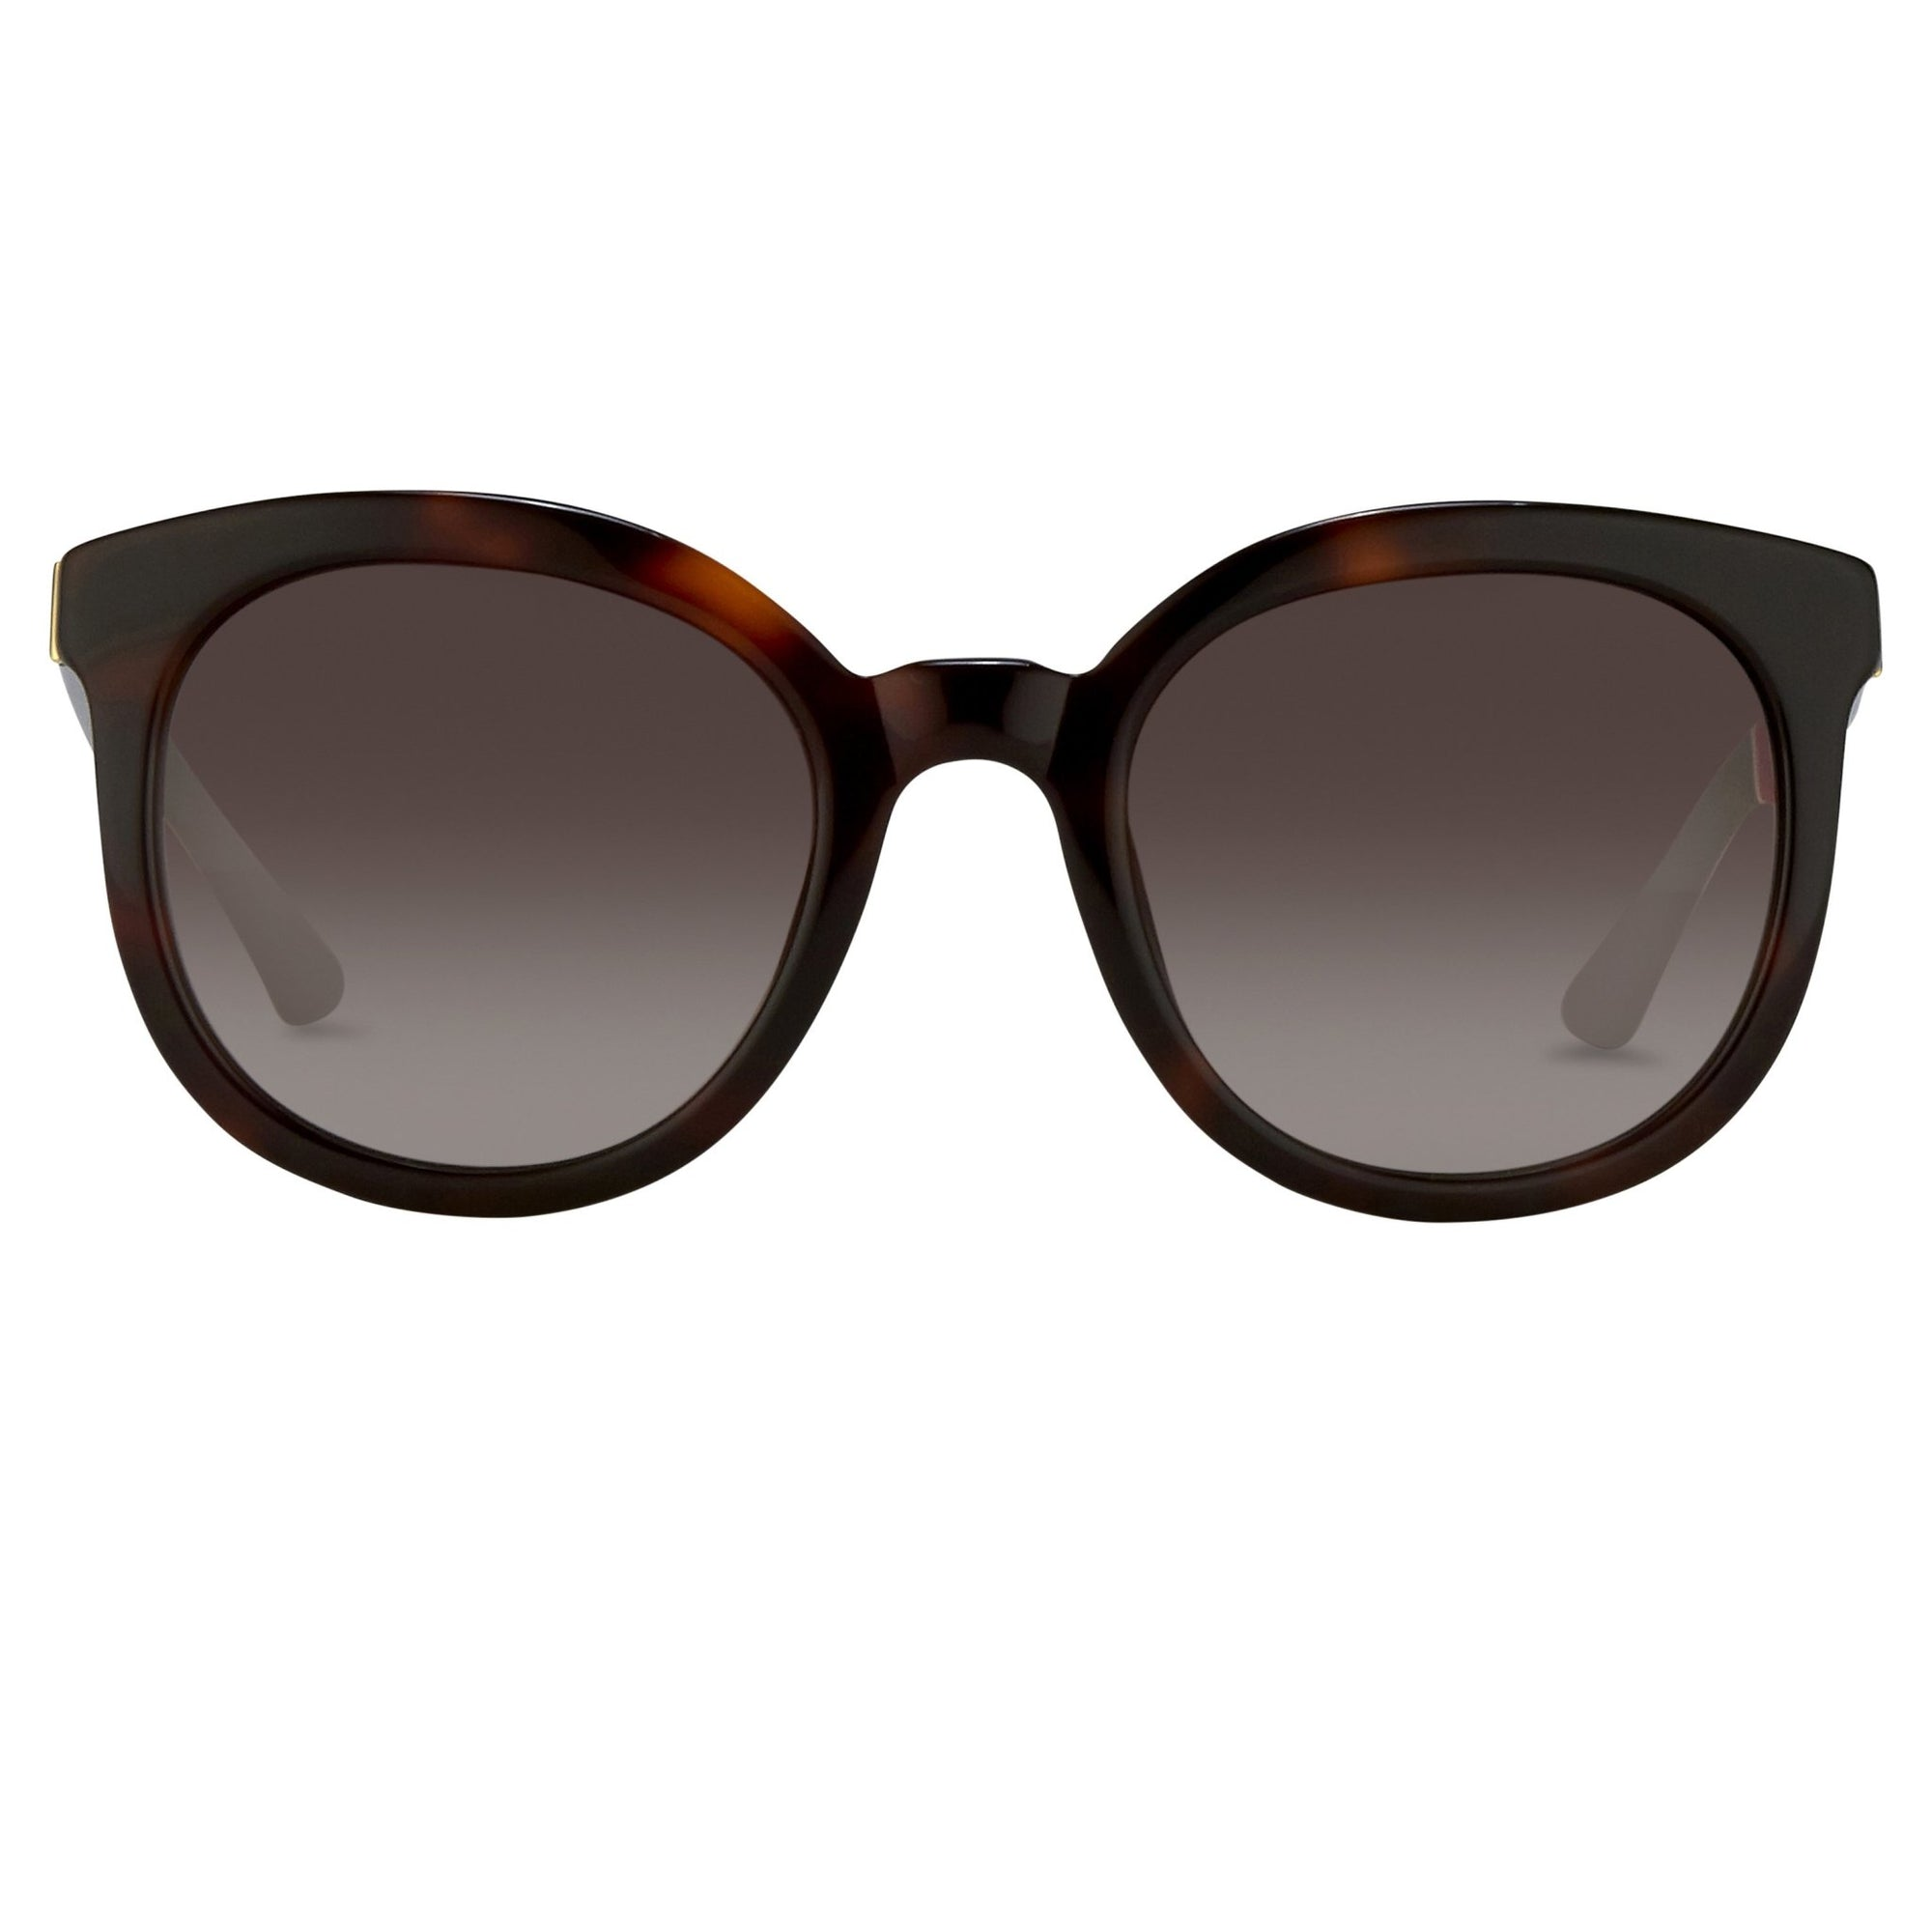 Orlebar Brown Sunglasses Oversized Tortoise Shell with Brown Graduated Lenses OB16C2SUN - Watches & Crystals